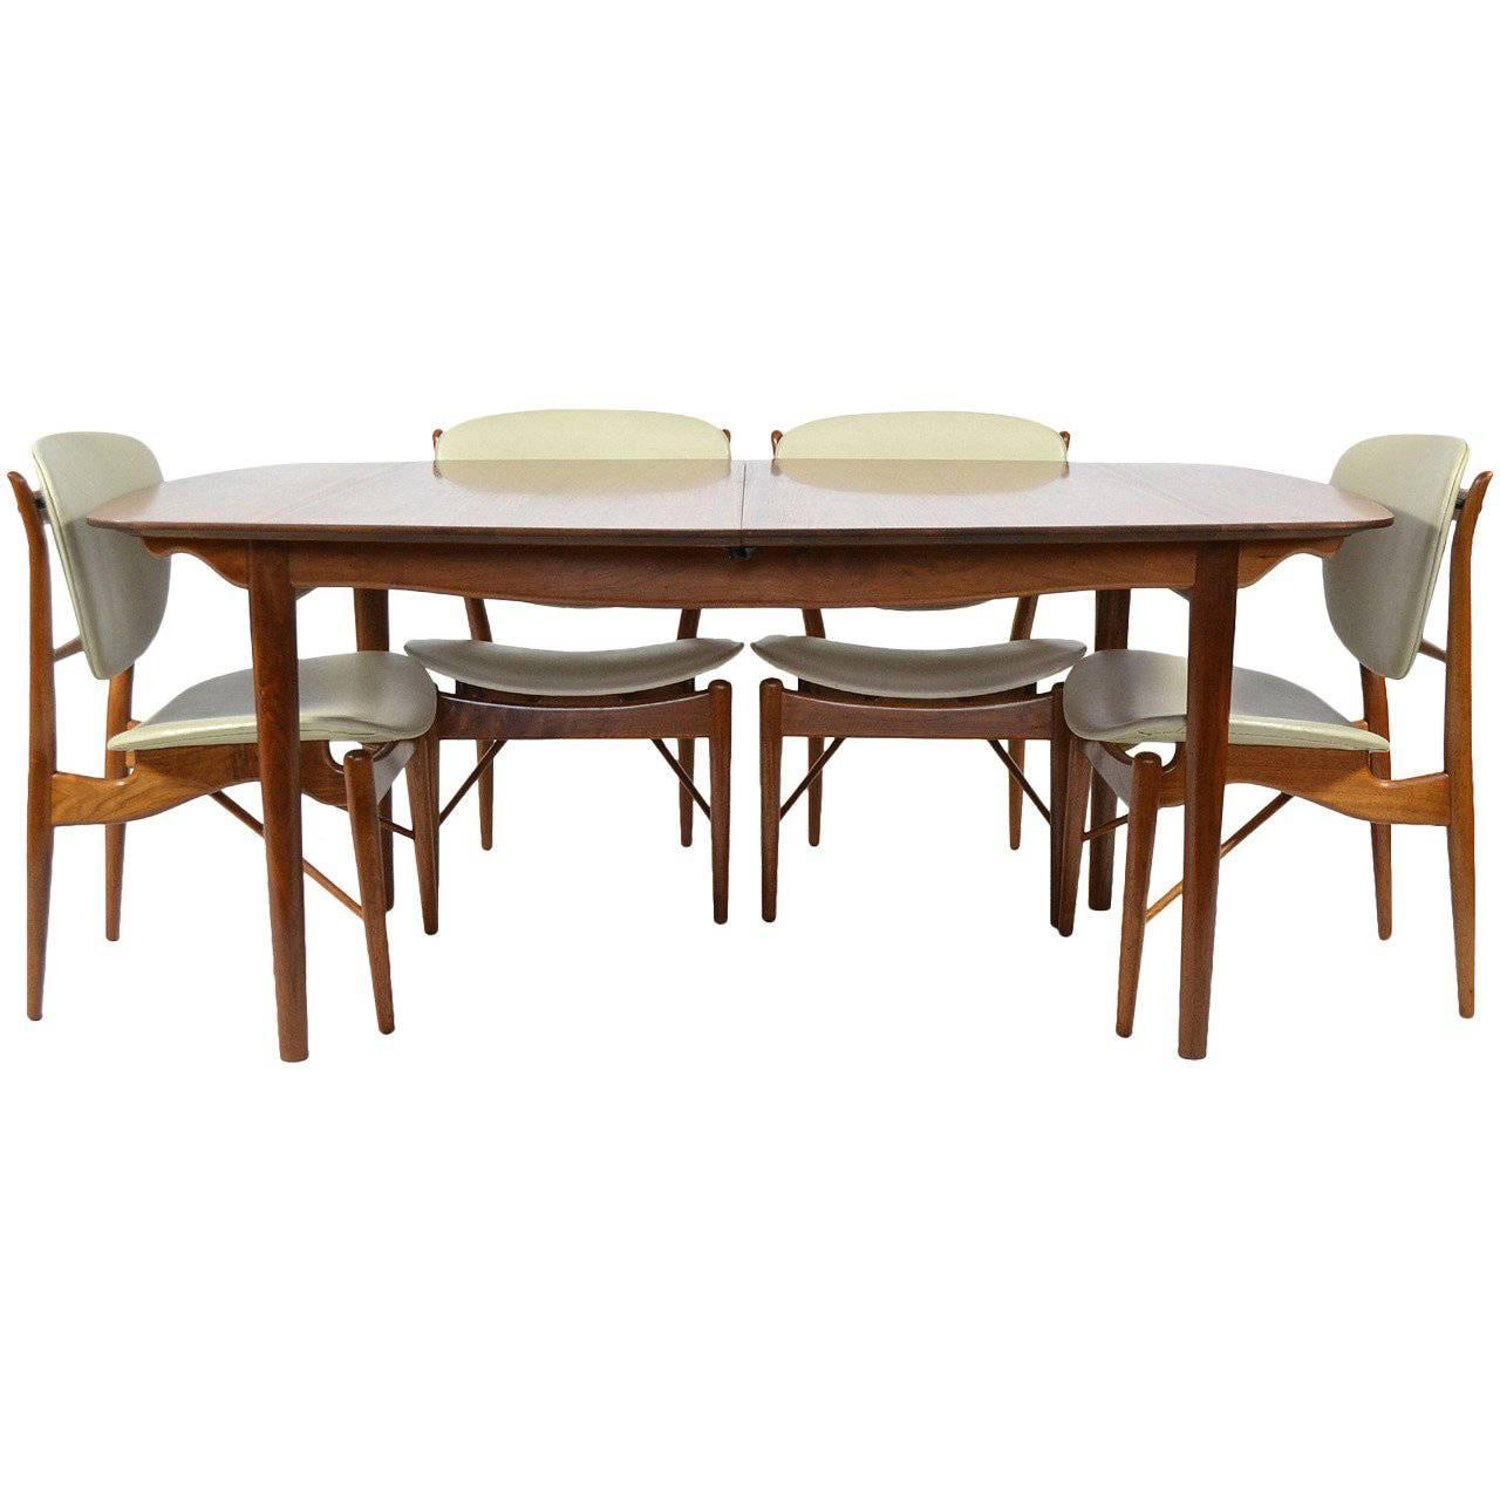 art nouveau mahogany dining table and 12 chairs by paul a dumas